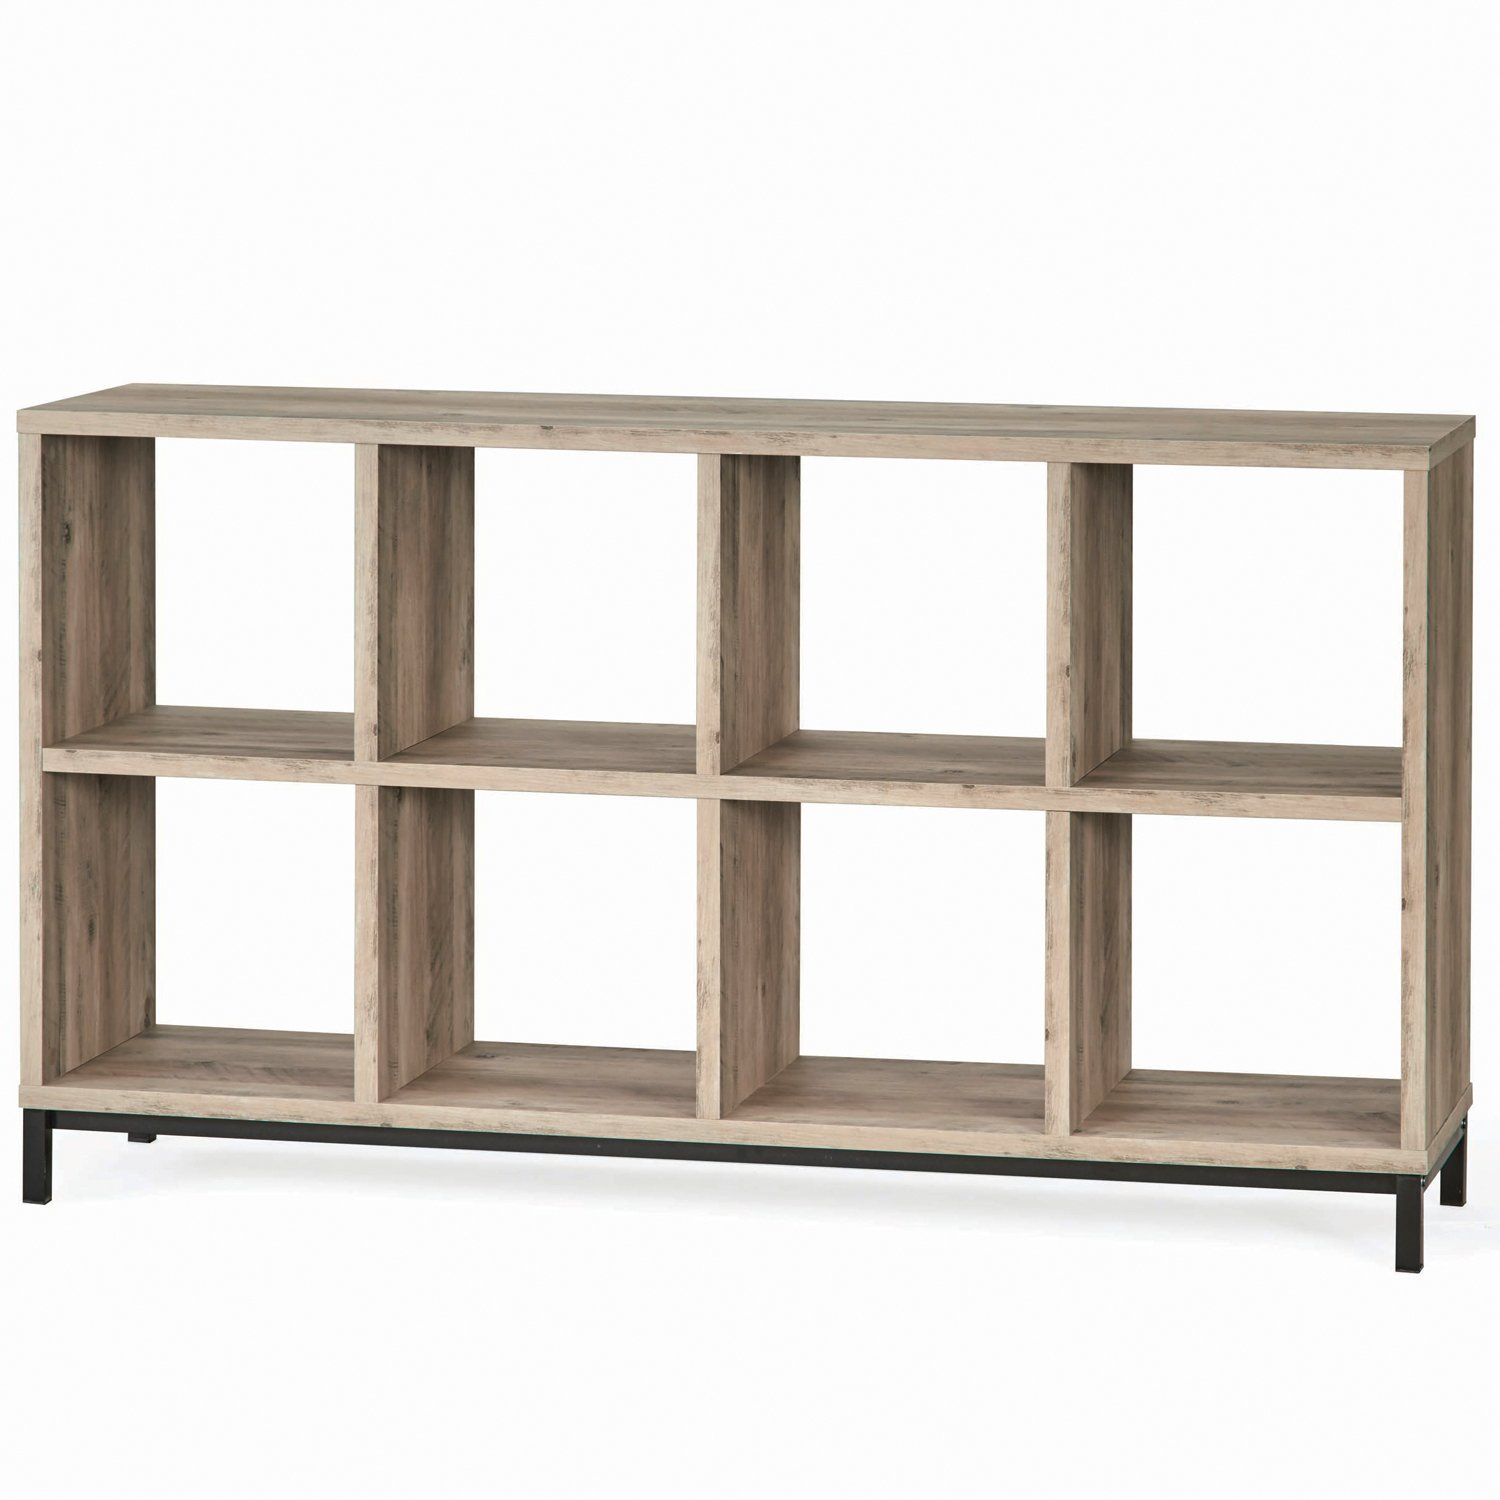 Better Homes and Gardens 8-cube Metal Base Organizer Creates Multiple Storage Solutions in Rustic Gray